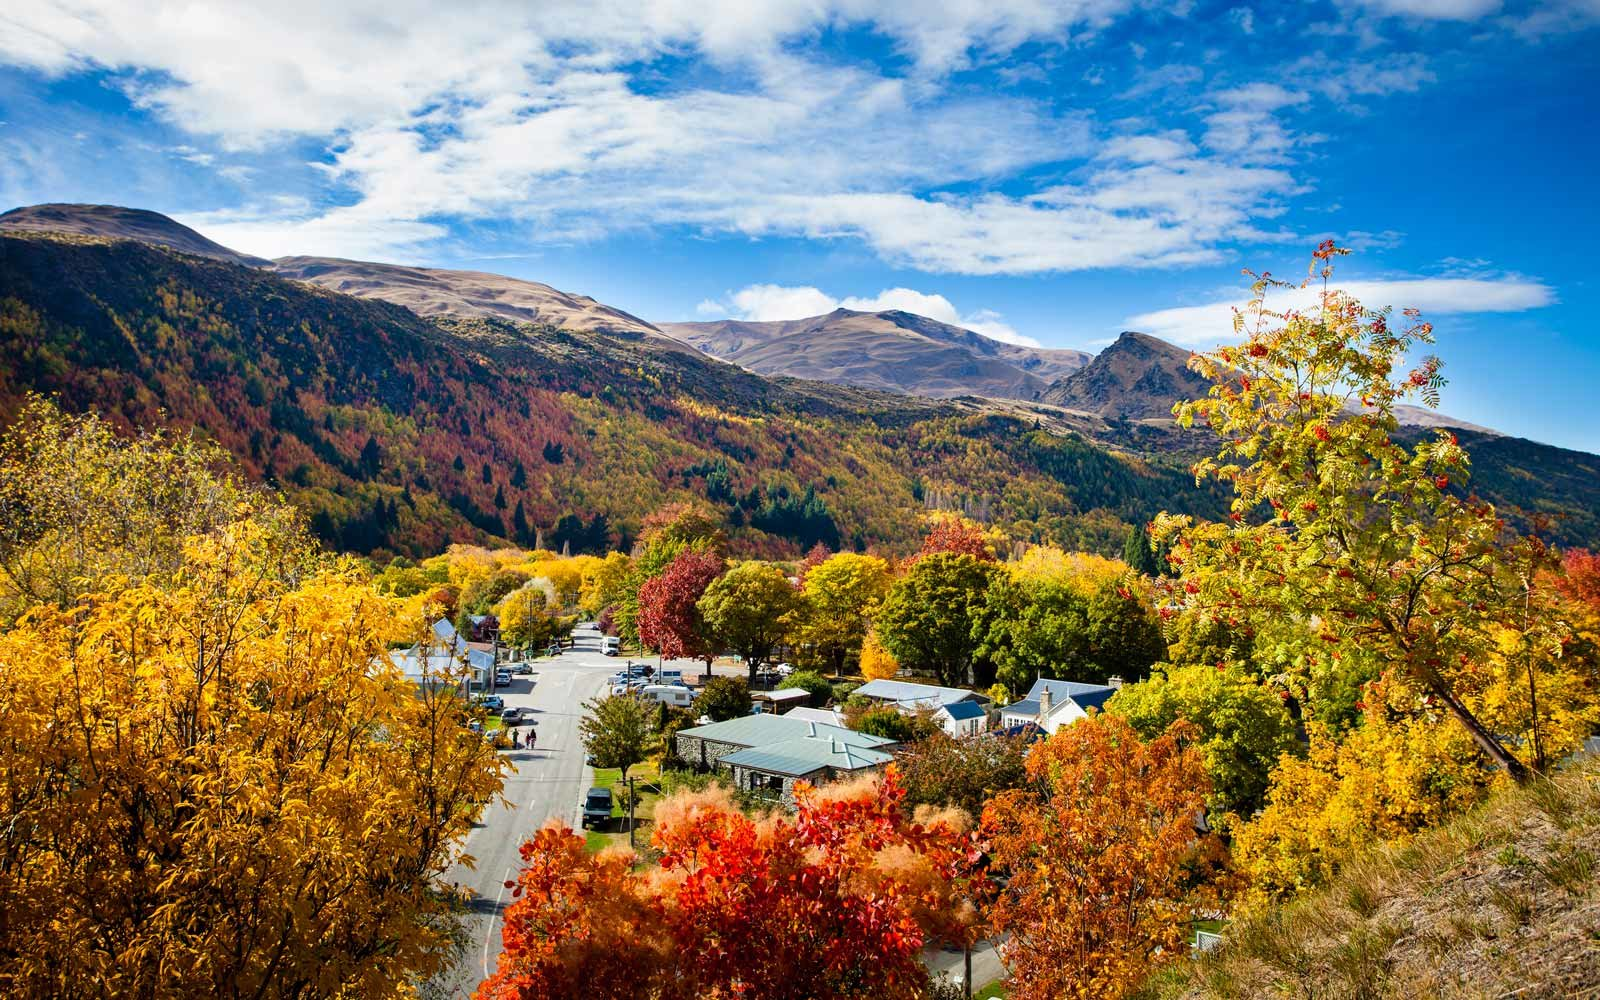 Autumn foliage in Arrowtown, Central Otago, New Zealand